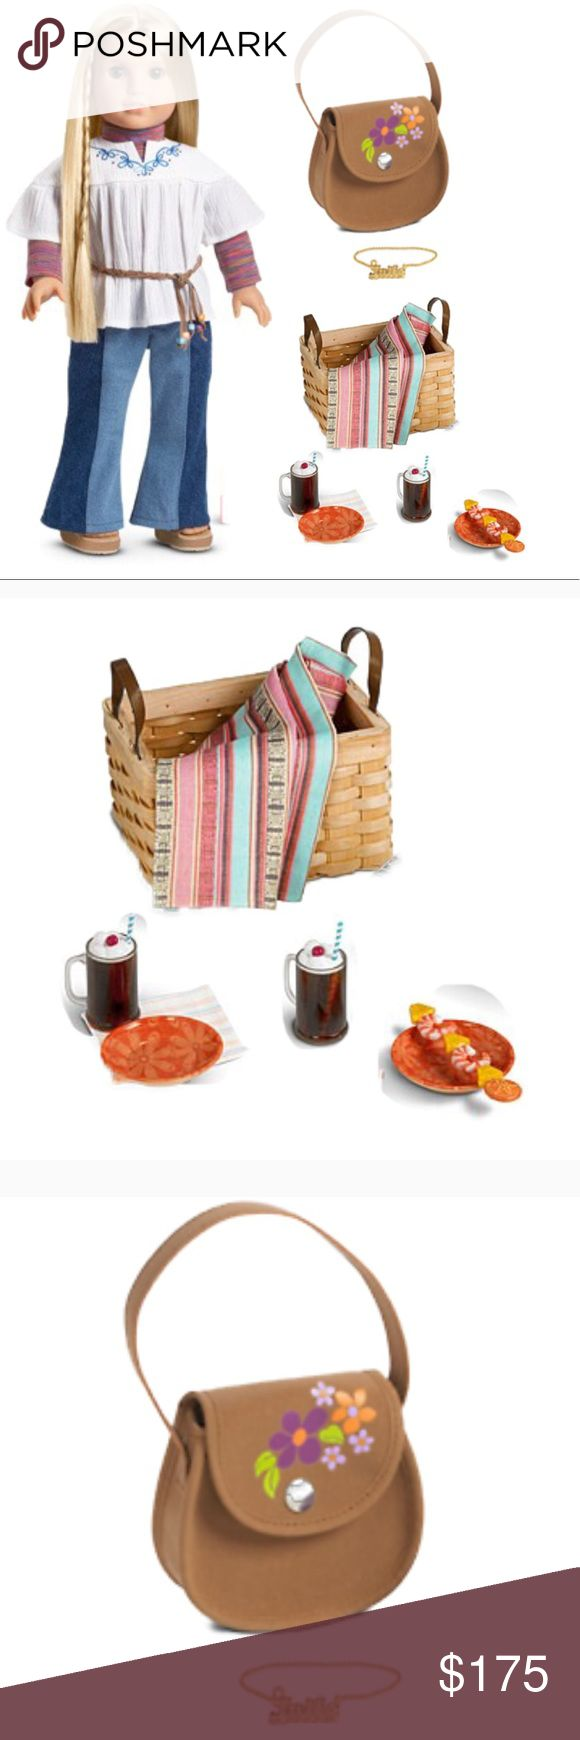 Lucianas Visitor Center Accessories   American Girl Wiki